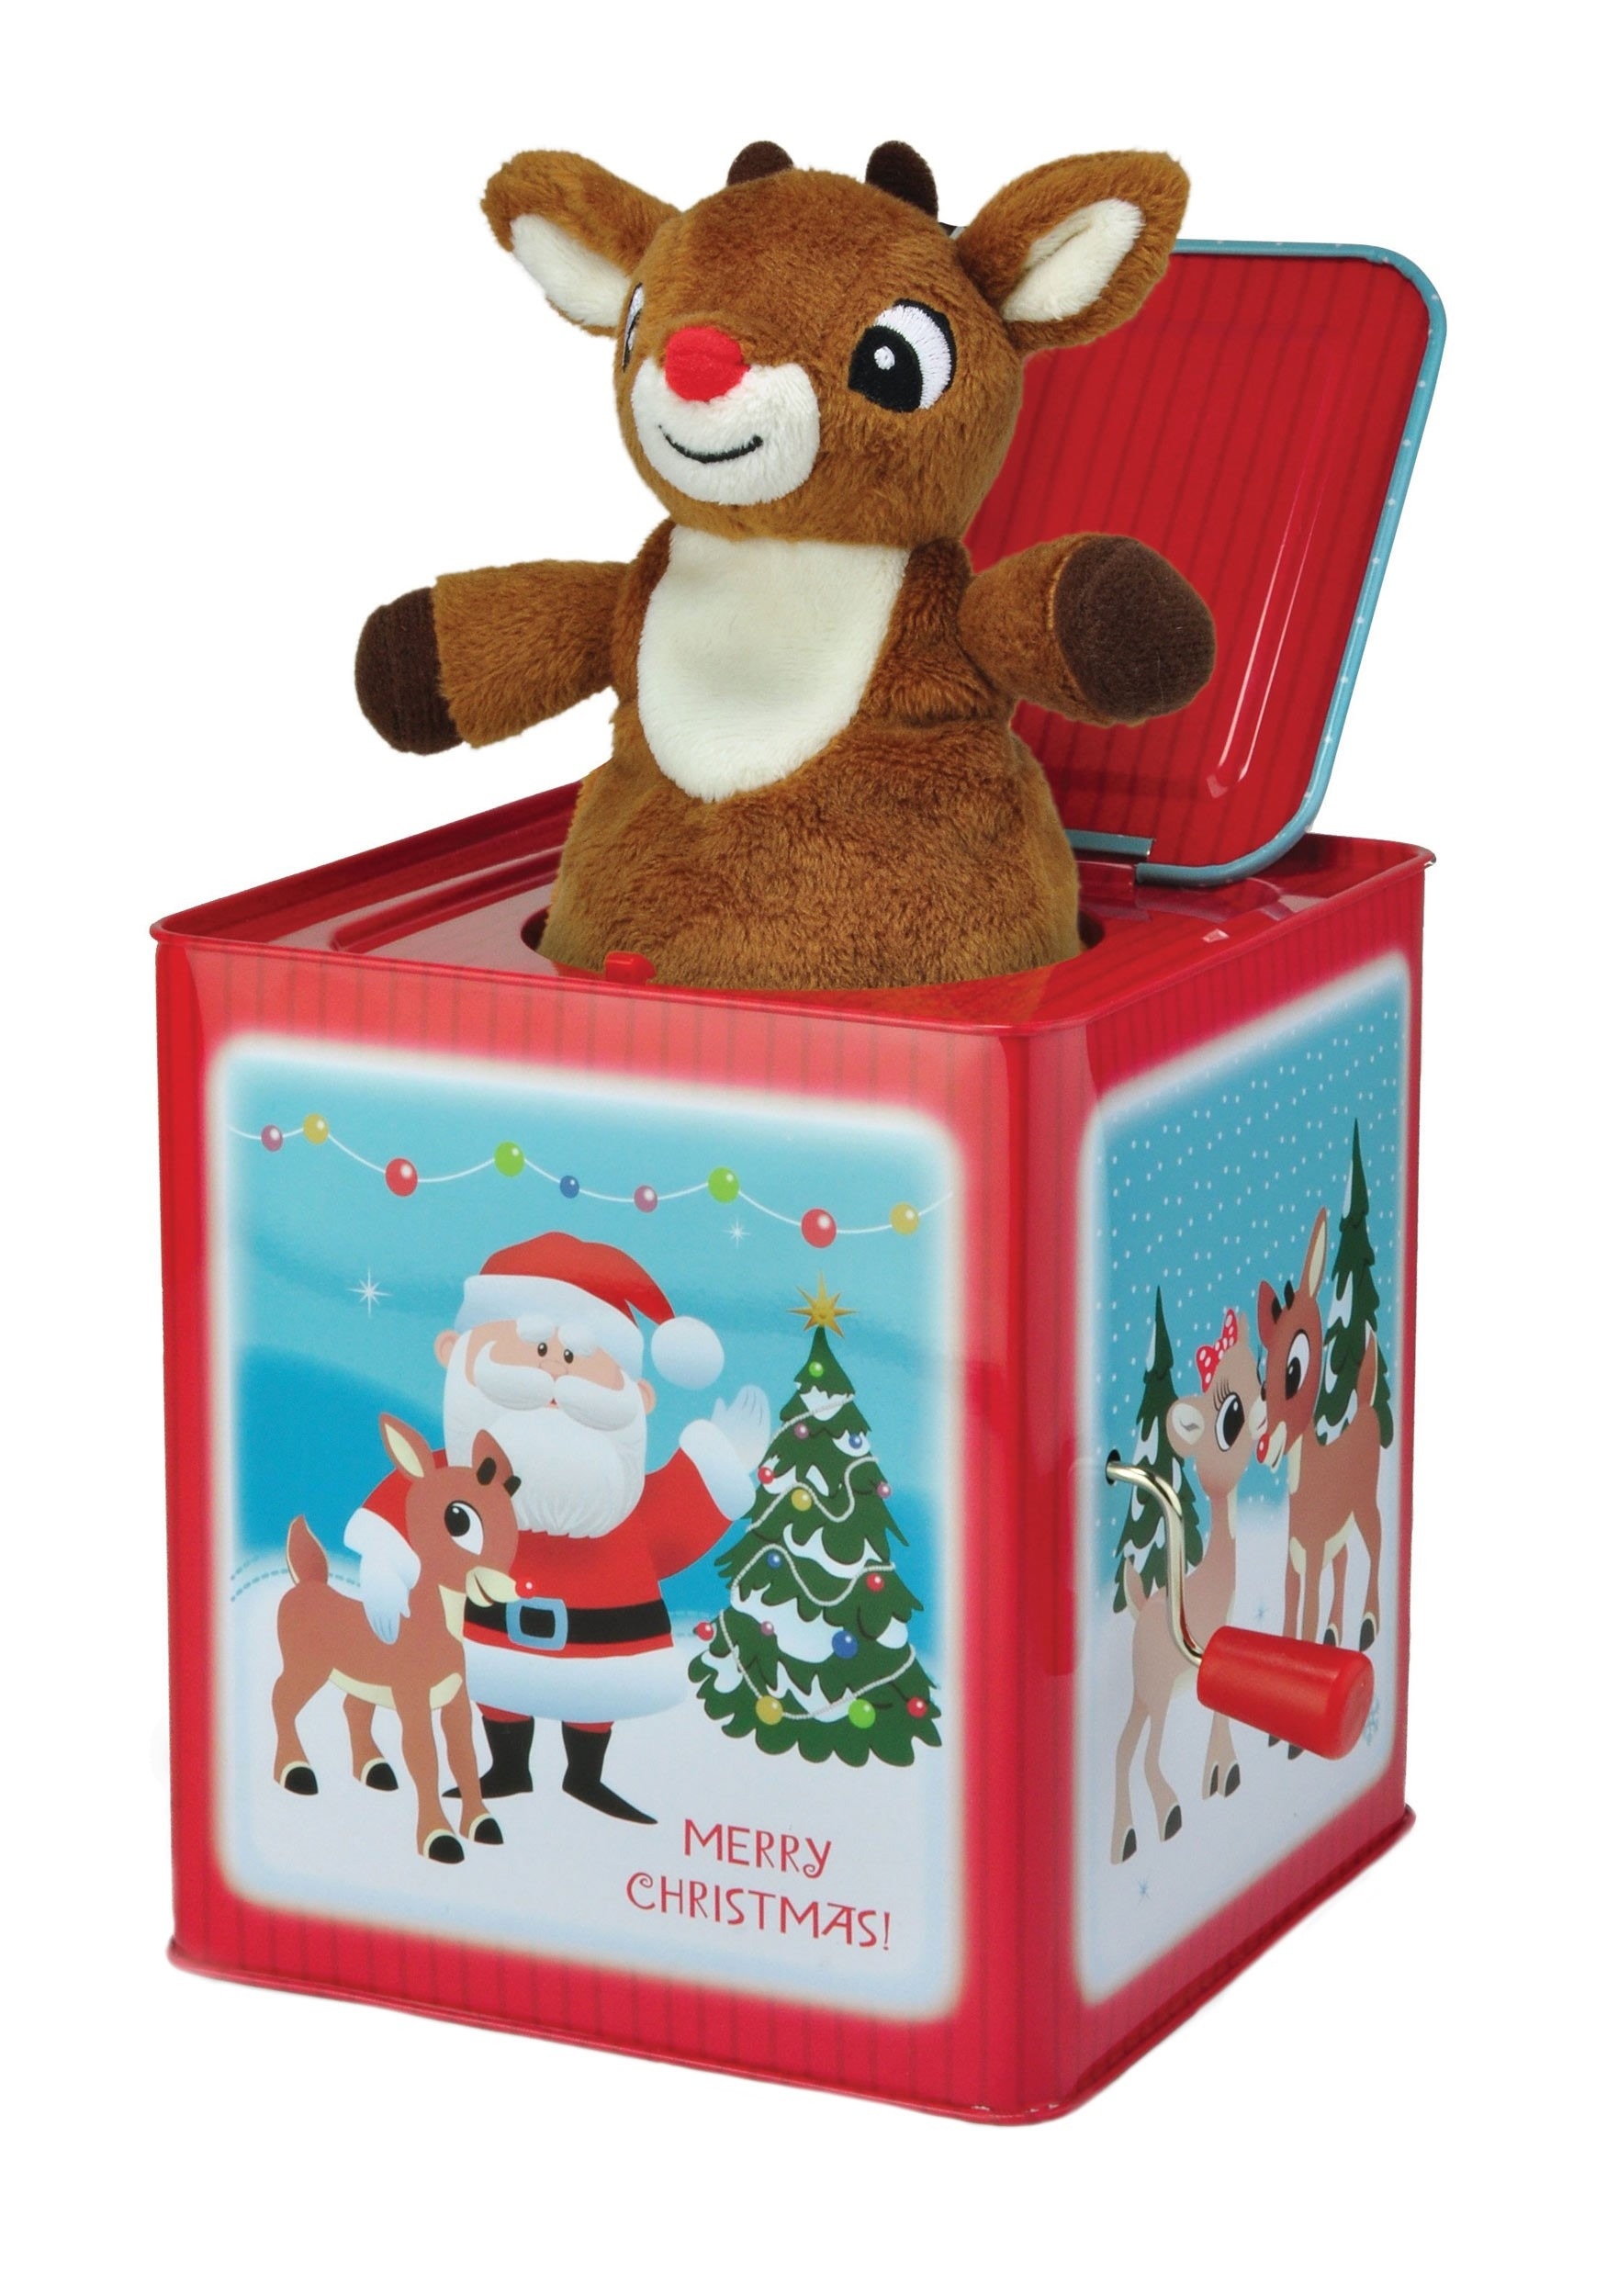 Rudolph the Red Nosed Reindeer Christmas Jack-in-the-Box